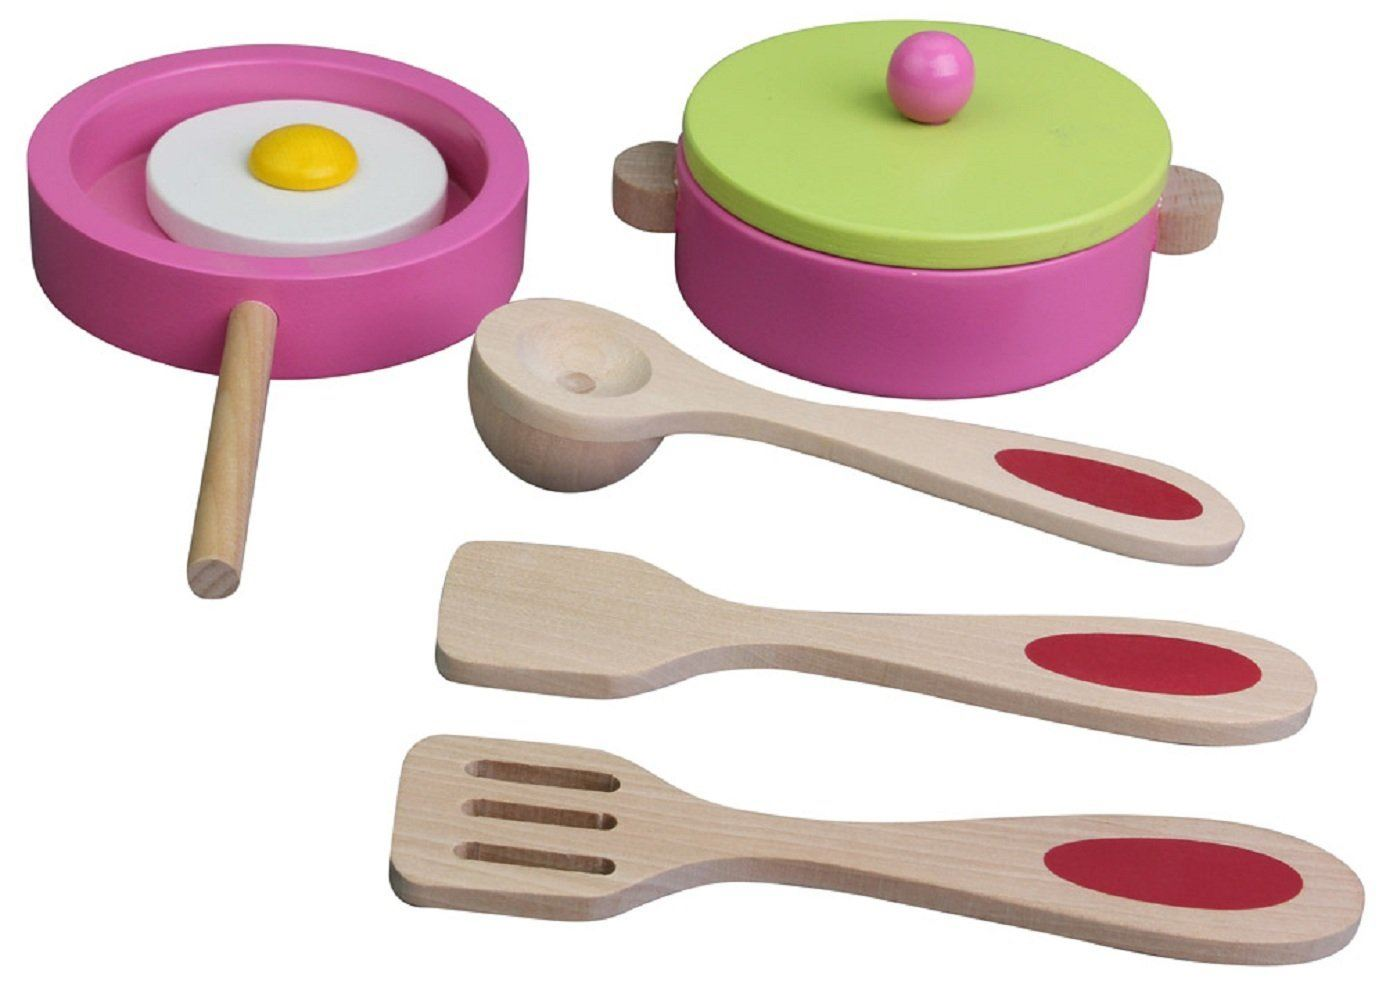 LELIN-WOODEN-WOOD-CHILDRENS-KIDS-PRETEND-PLAY-SAFFRON-KITCHEN-COOKING-OVEN-TOY thumbnail 12